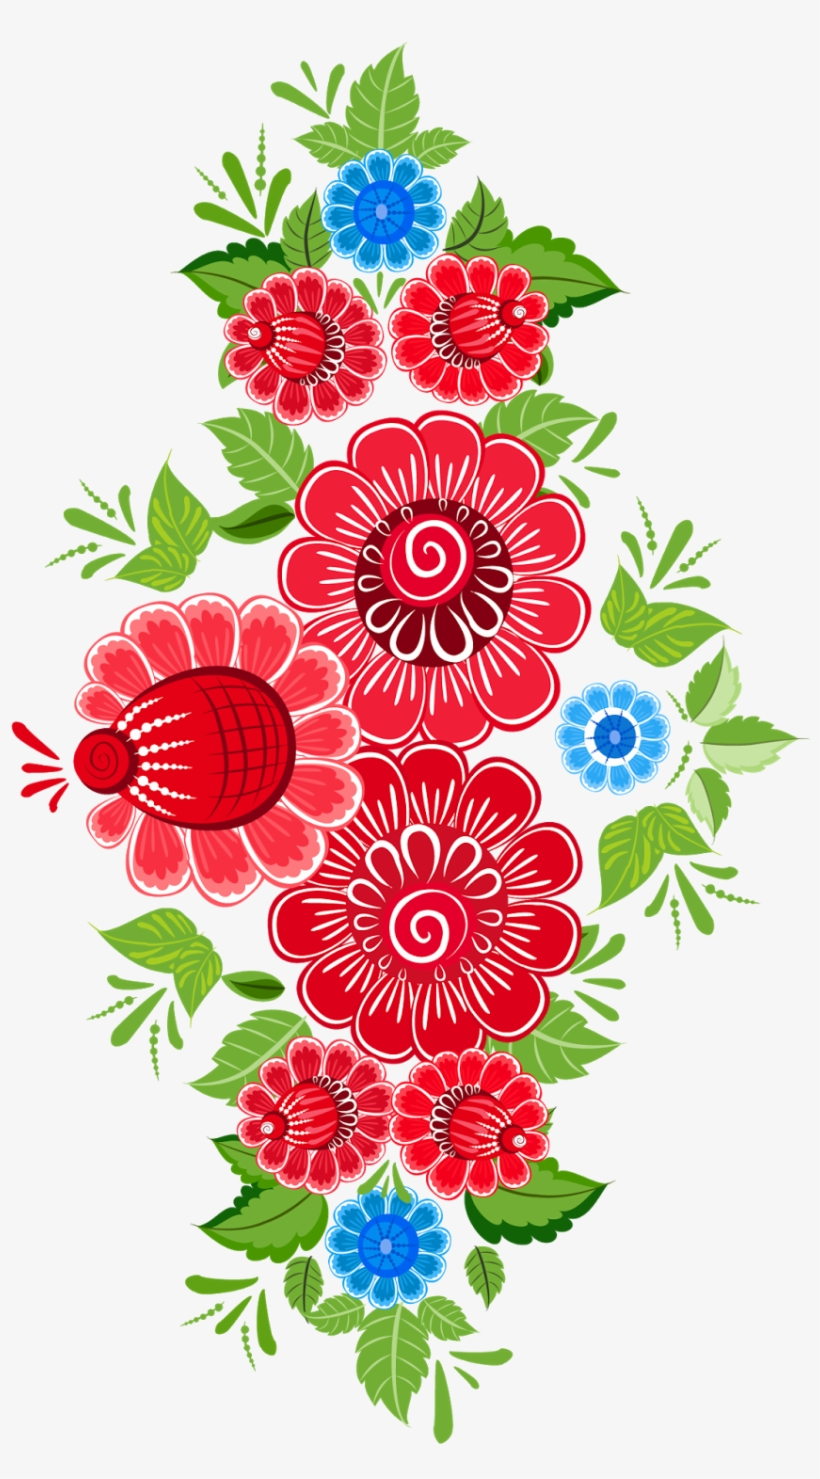 Royalty Free Download Flower Ornament Art Floral Design Mexican Flowers Clipart Png Transparent Png 1131x1600 Free Download On Nicepng